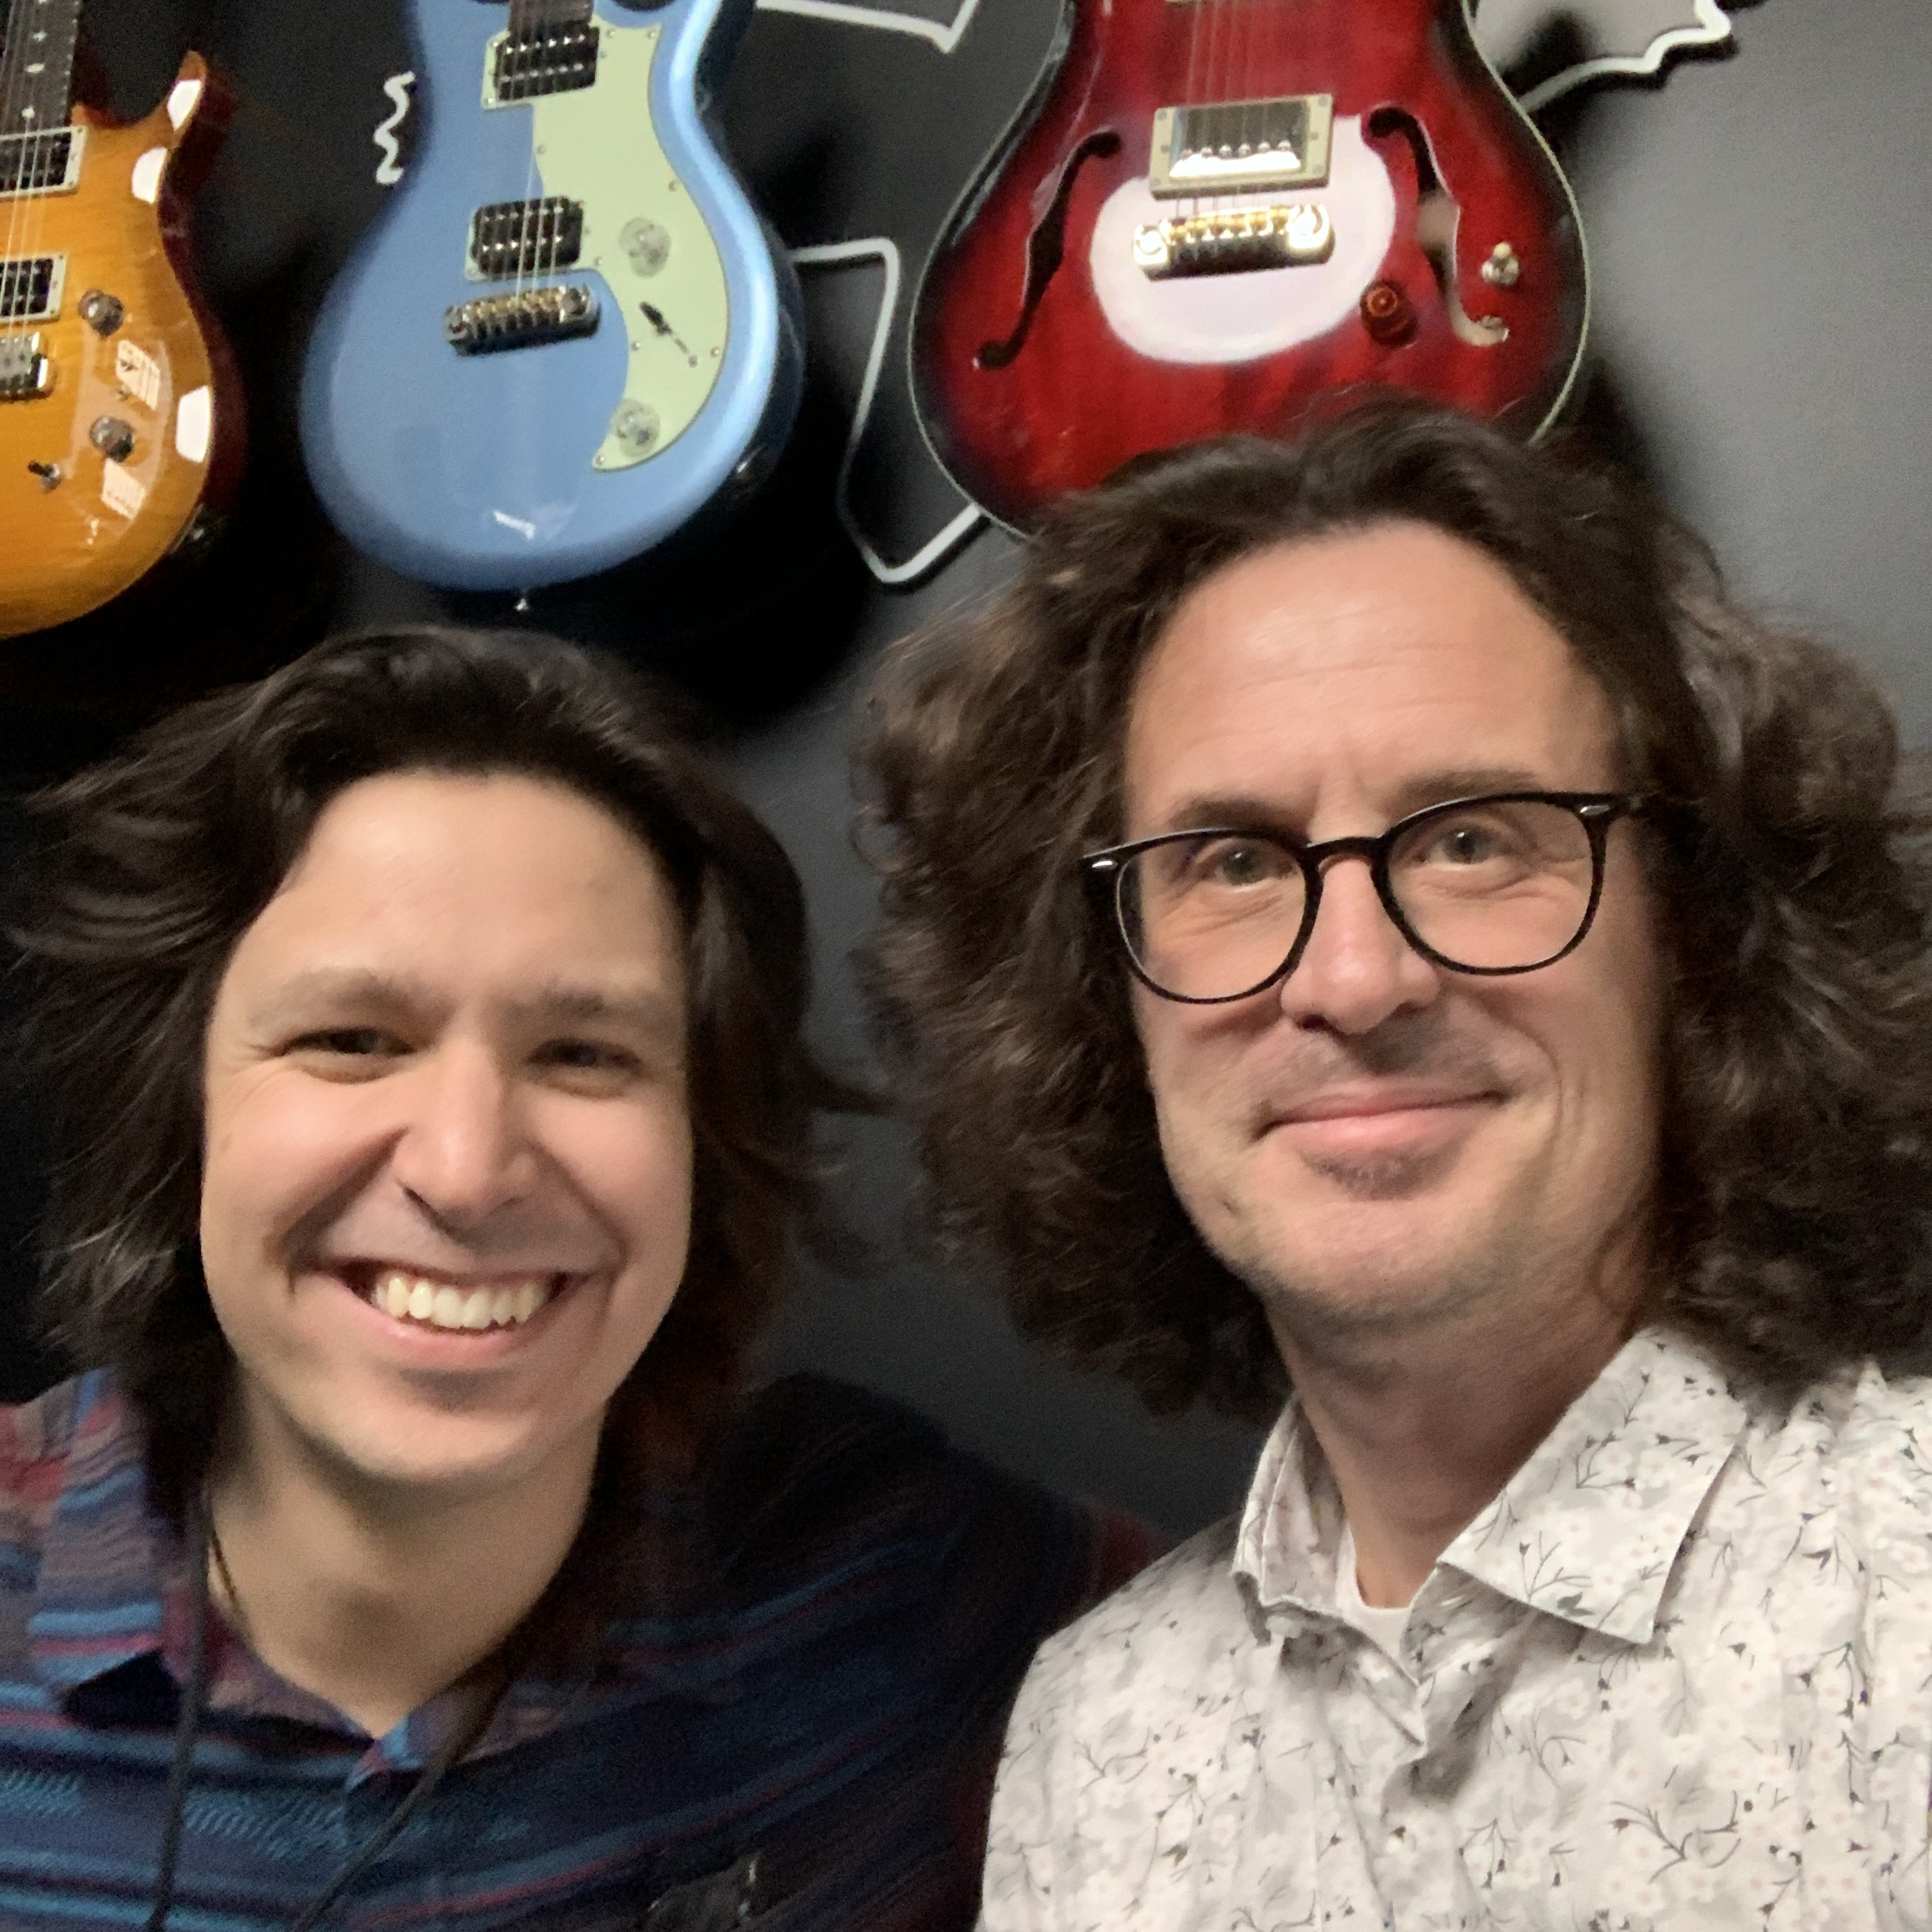 Davy Knowles guitar in hand interview at the PRS booth - NAMM 2020